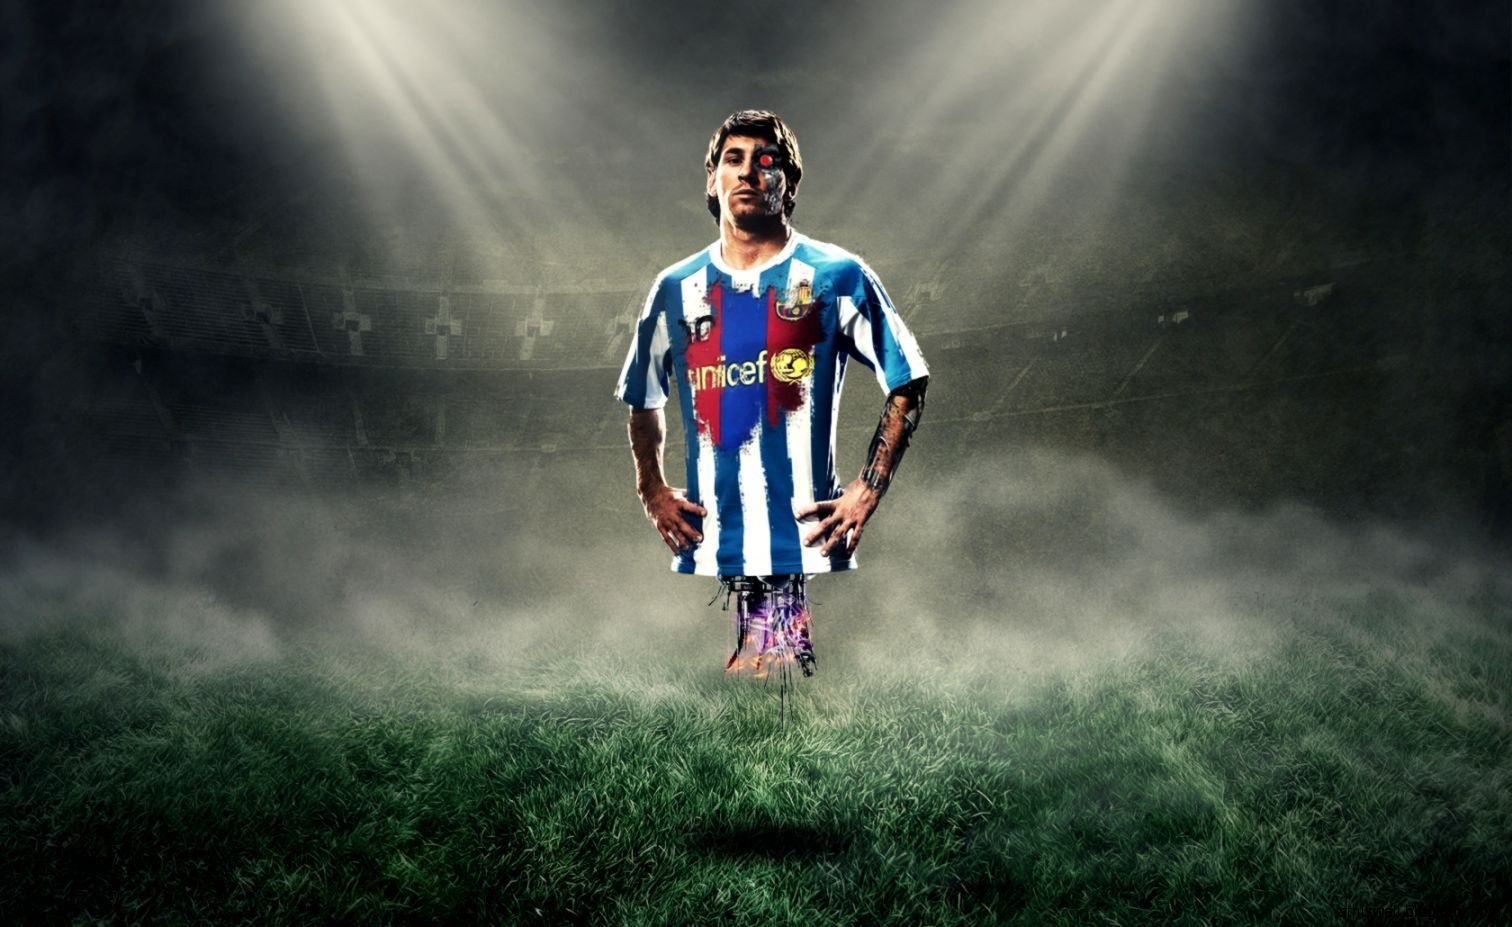 Messi Wallpaper 1920×1200 Cool Soccer Pictures Wallpapers